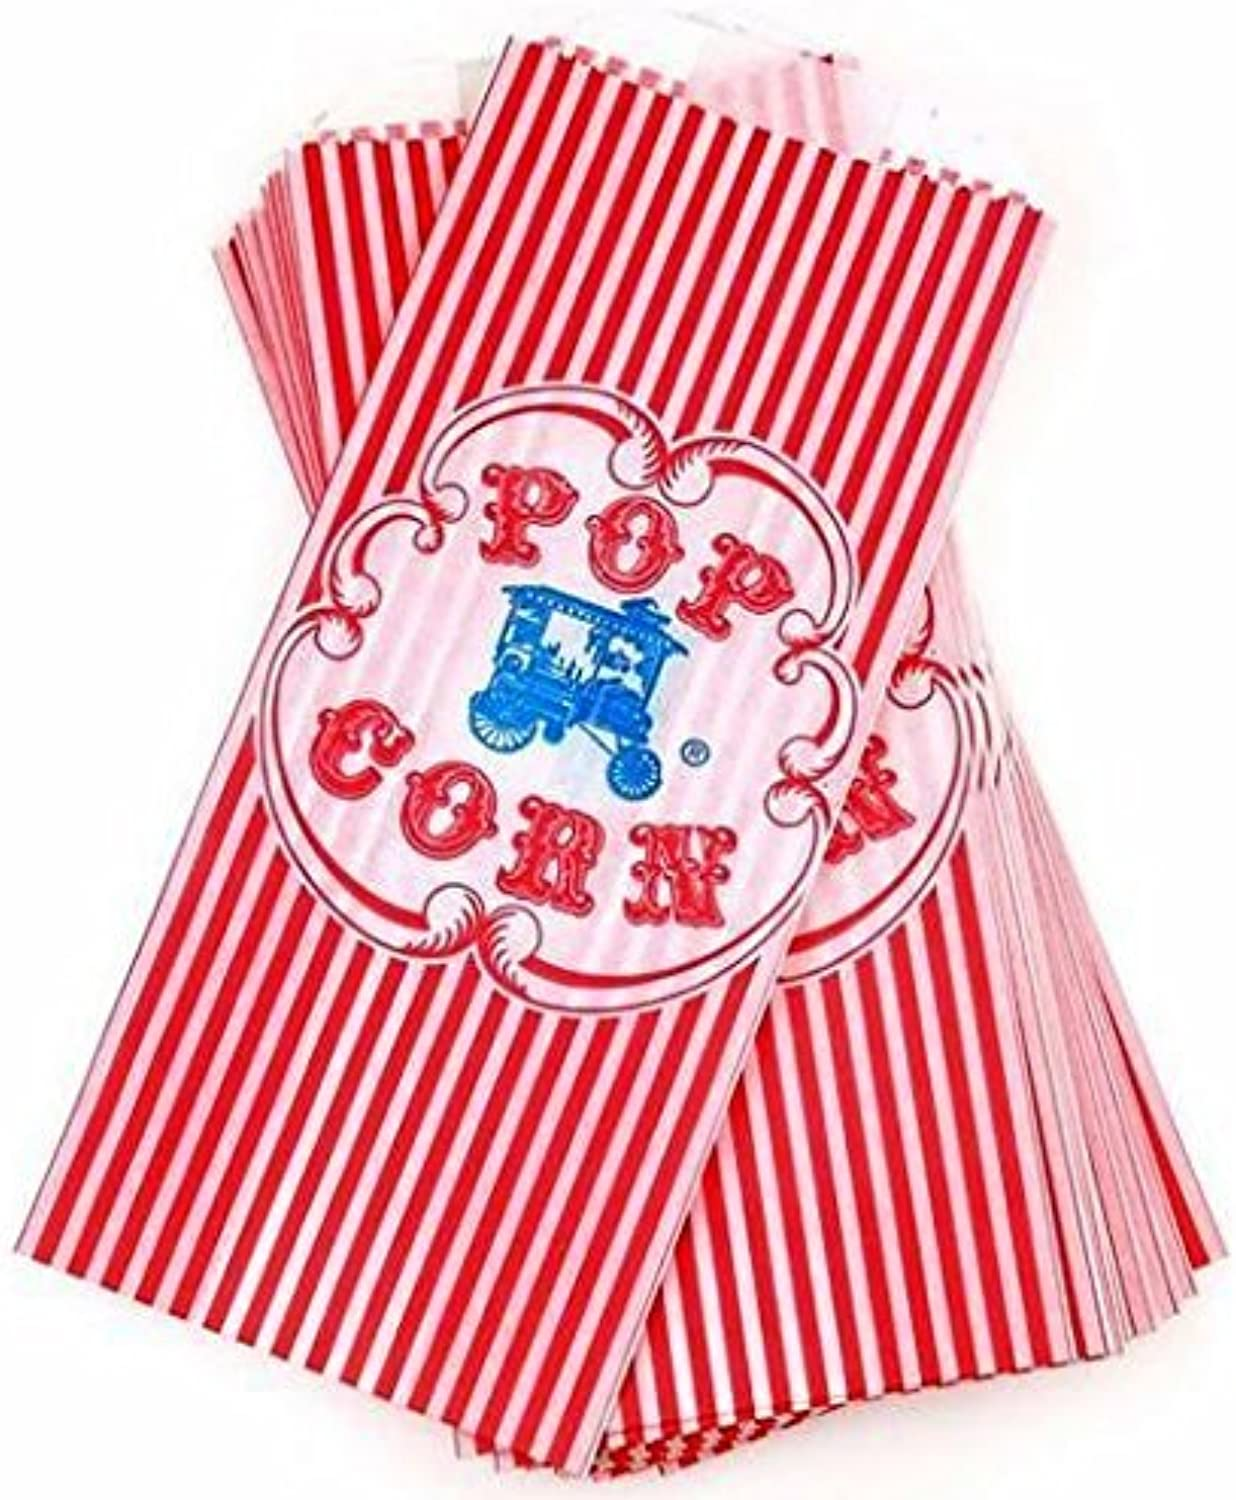 Vintage Retro Style Red Striped Wagon Popcorn Bag  100 Count